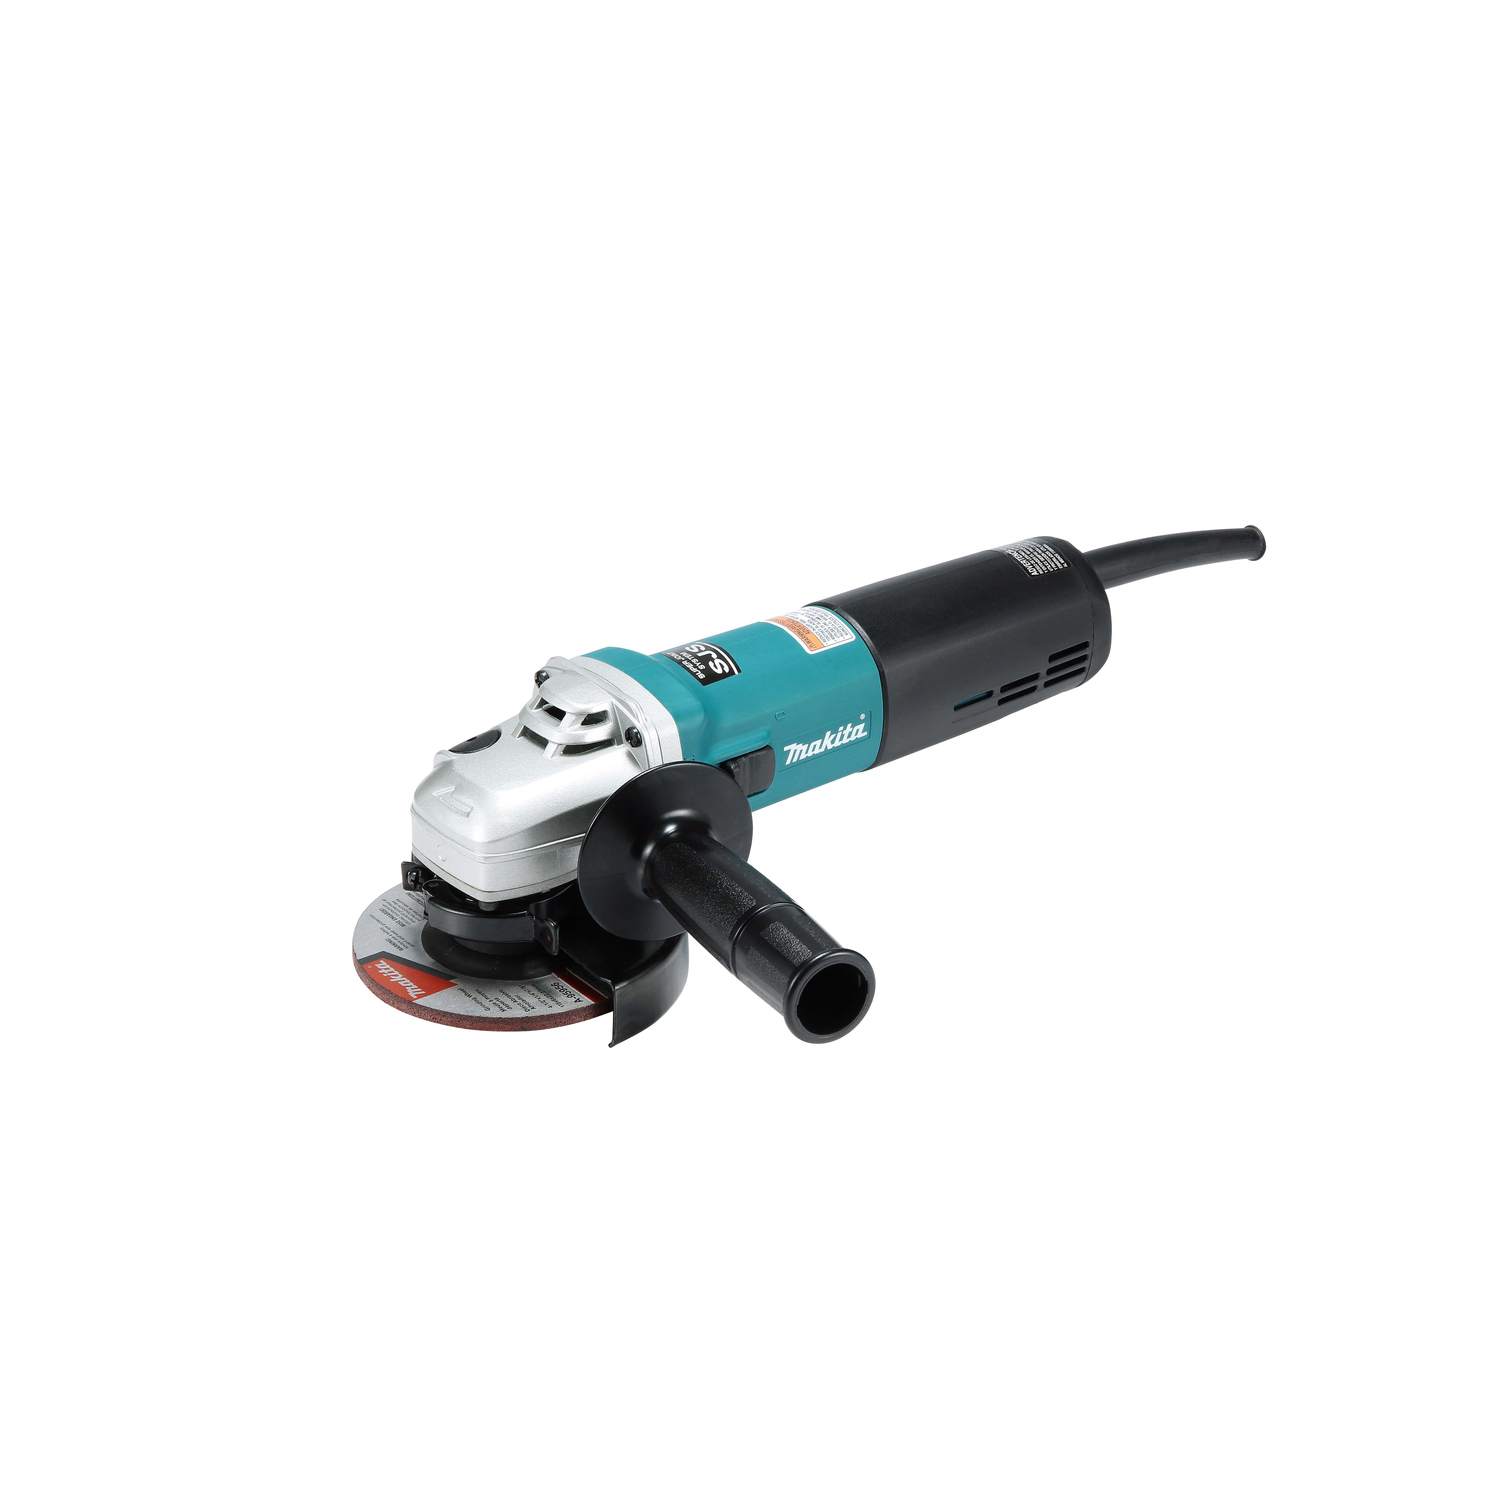 Makita 9564cv 4 1 2 In Slide Switch Variable Speed Angle Grinder Blower Wiring Diagram